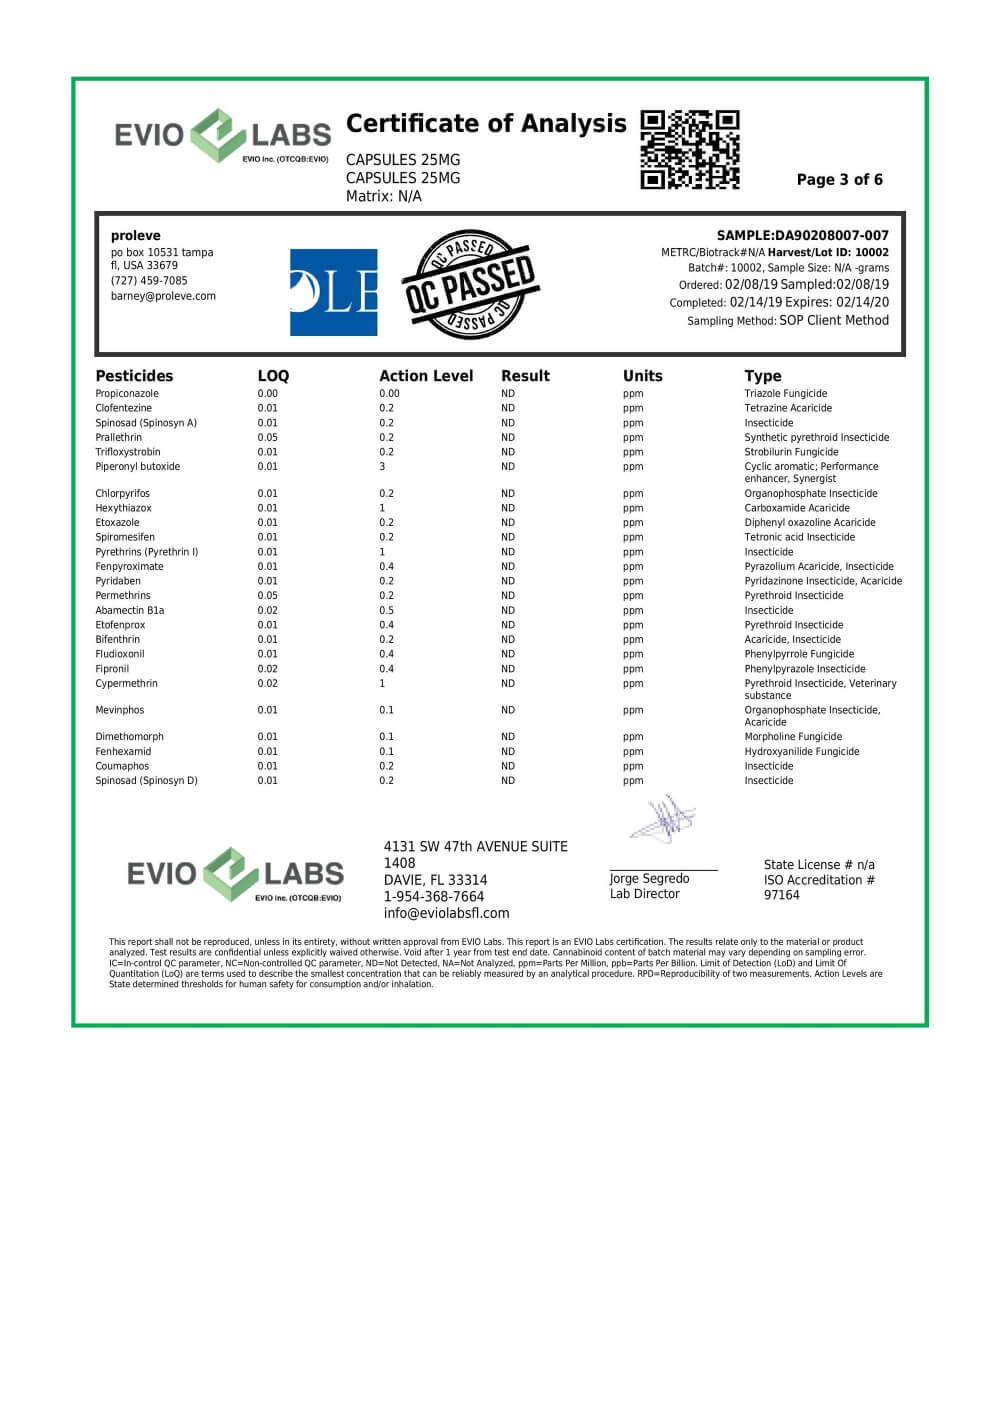 Proleve CBD Concentrate Isolate Capsule 25mg Lab Report